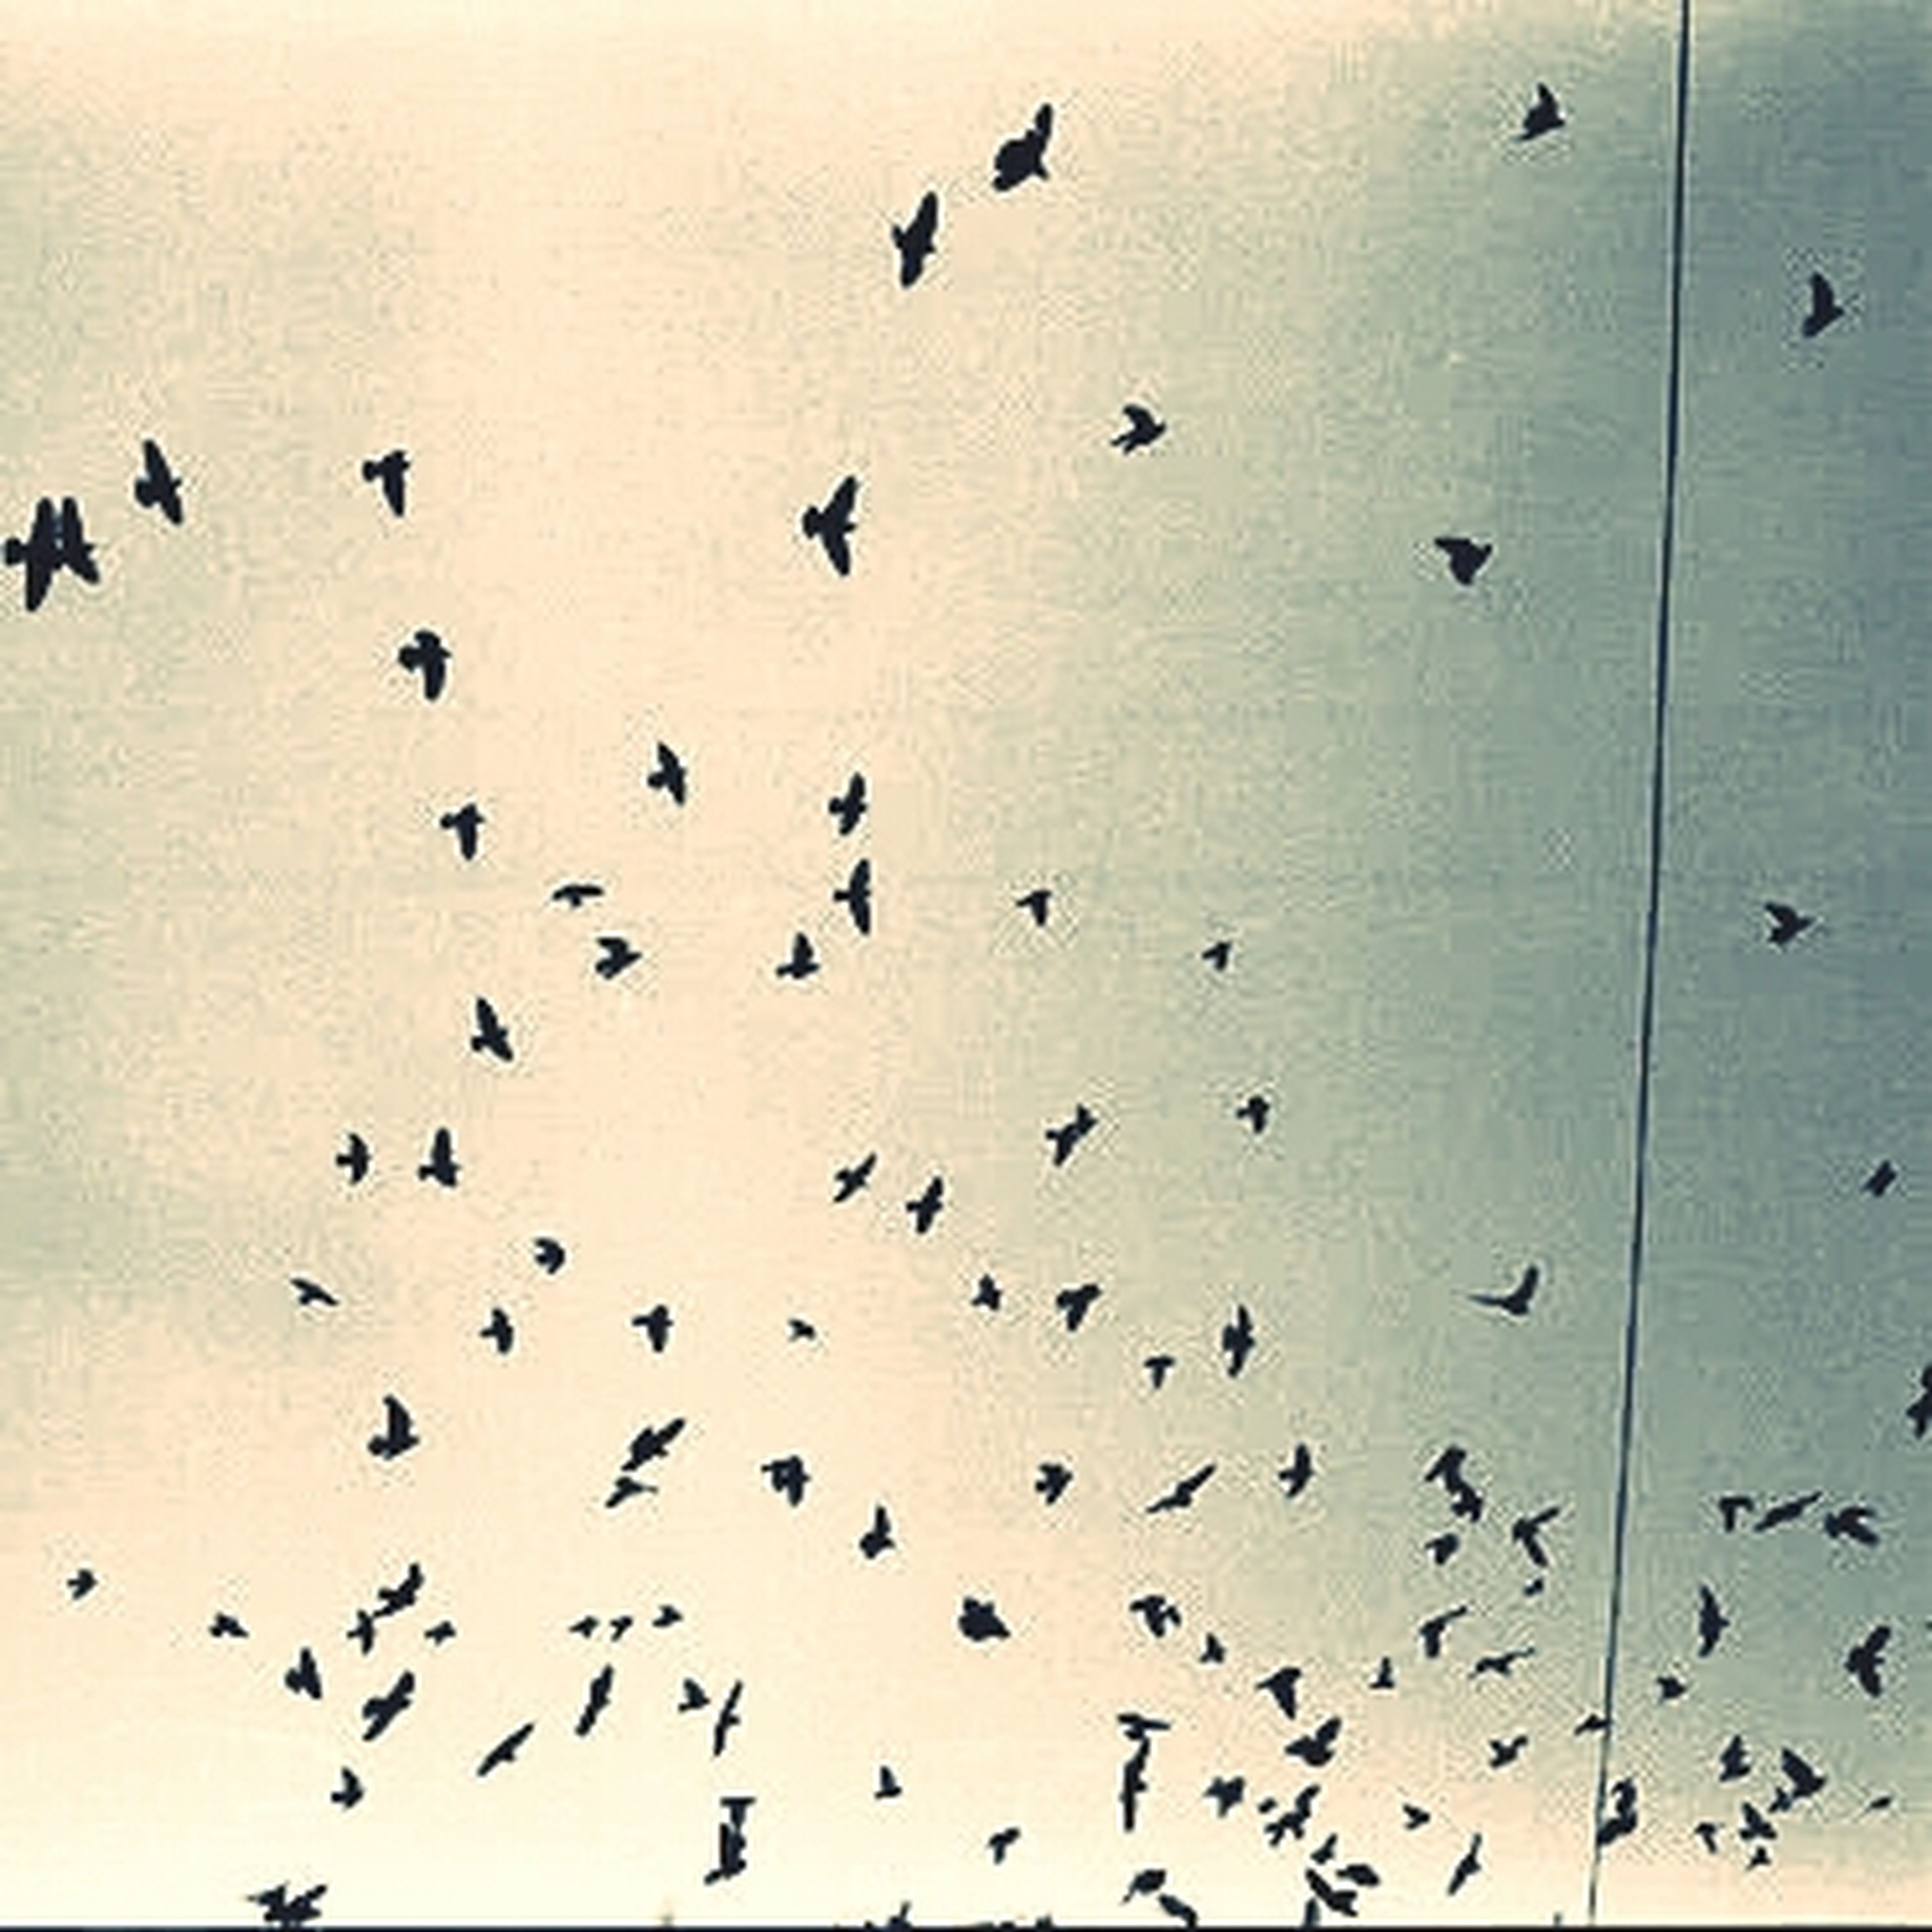 bird, flock of birds, animal themes, animals in the wild, flying, wildlife, low angle view, indoors, silhouette, sky, backgrounds, nature, day, full frame, no people, abundance, built structure, in a row